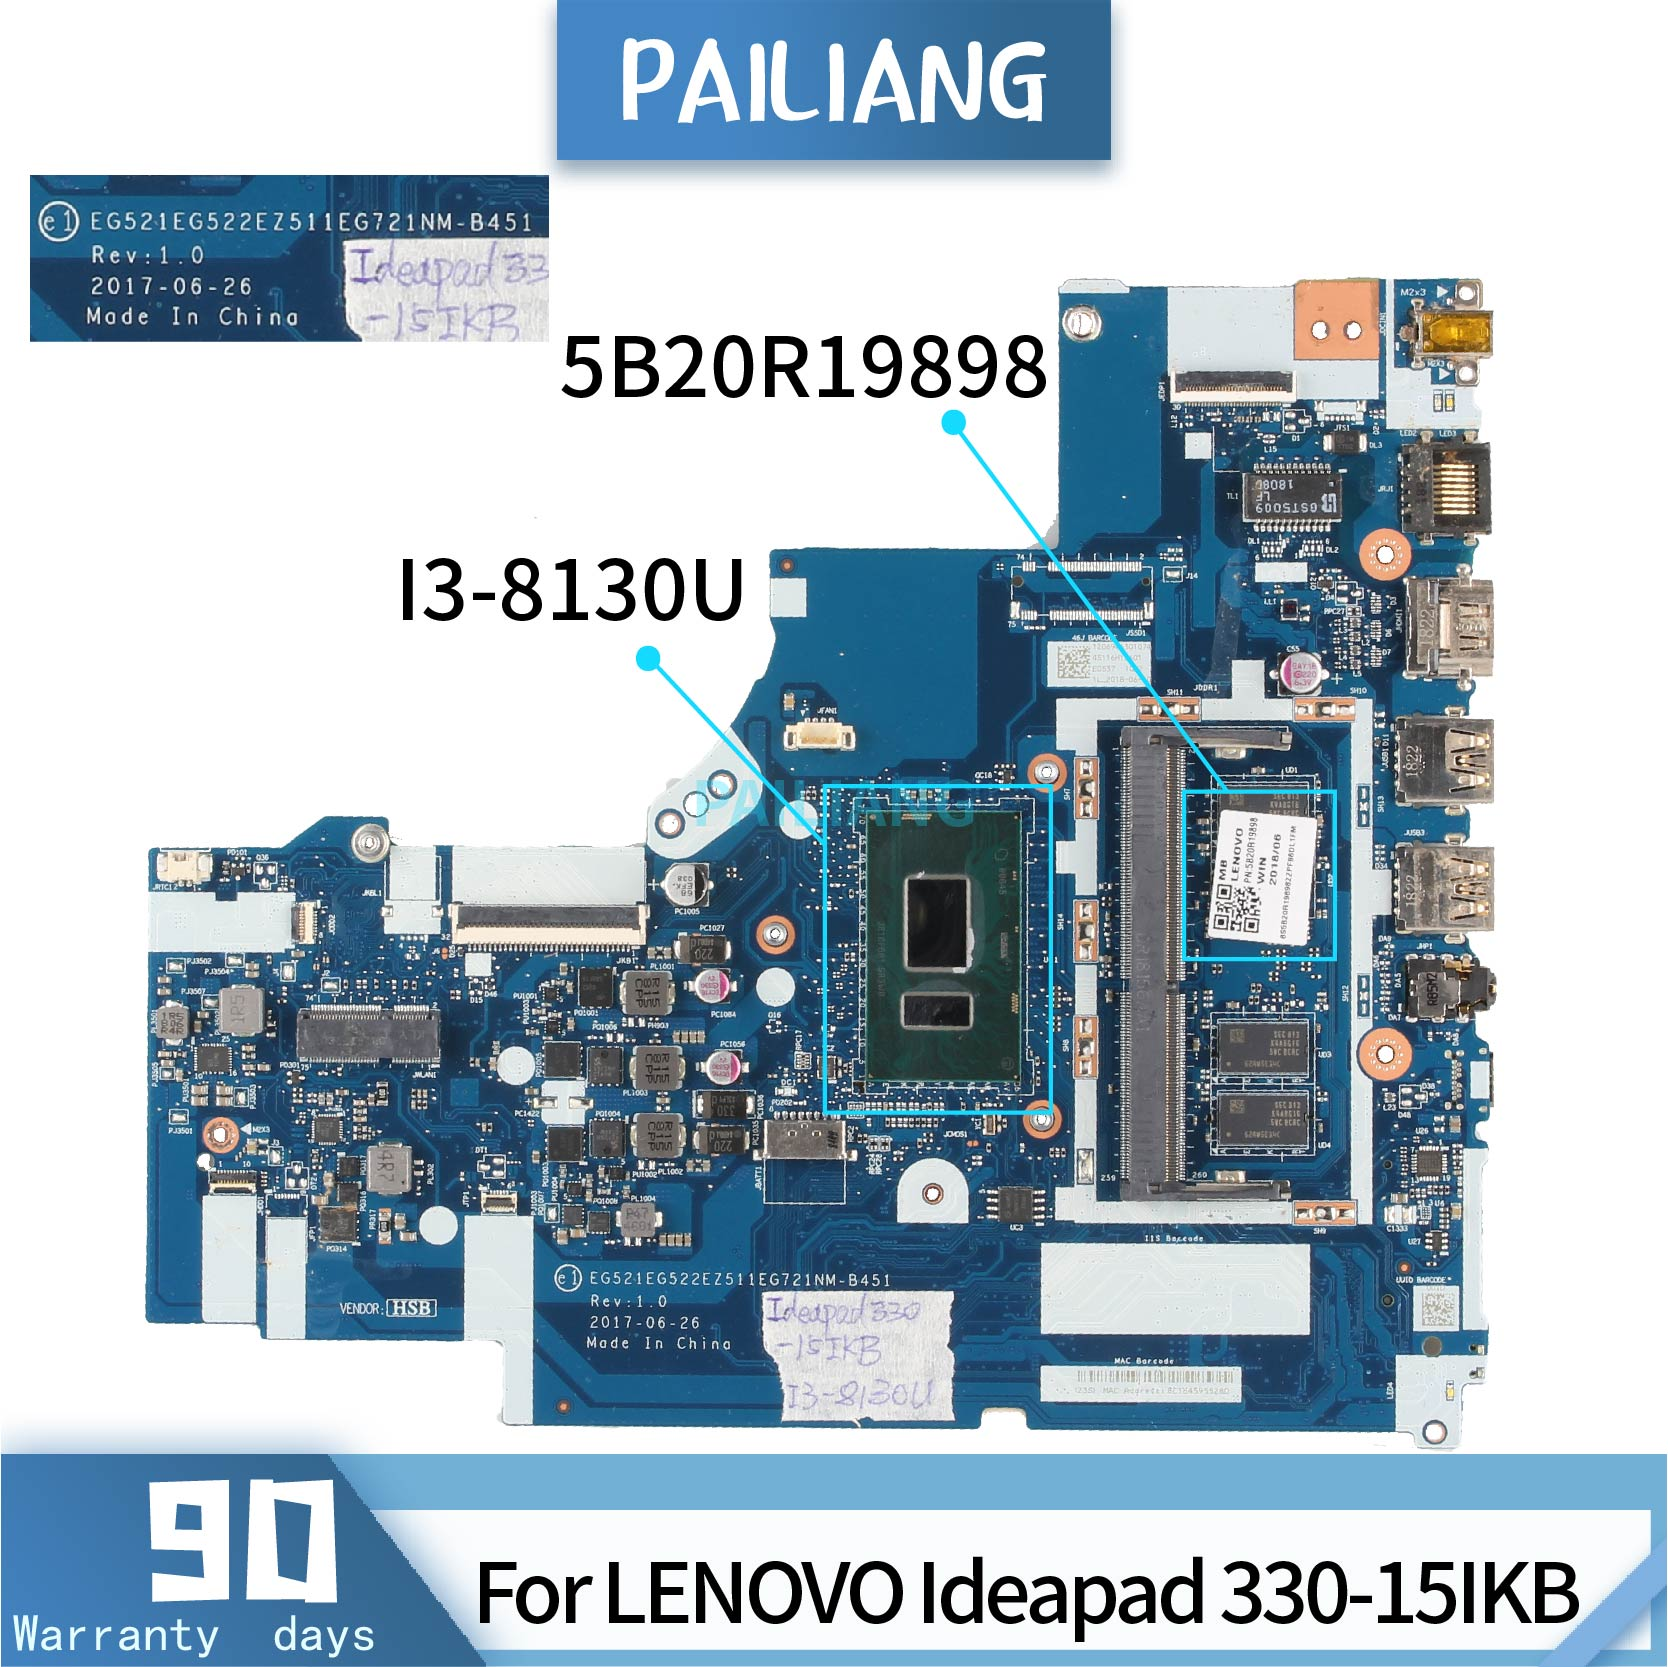 PAILIANG Laptop <font><b>motherboard</b></font> For <font><b>LENOVO</b></font> <font><b>Ideapad</b></font> <font><b>330</b></font>-15IKB Mainboard 5B20R19898 NM-B451 TESTED SR3W0 I3-8130U DDR3 With 4G RAM image